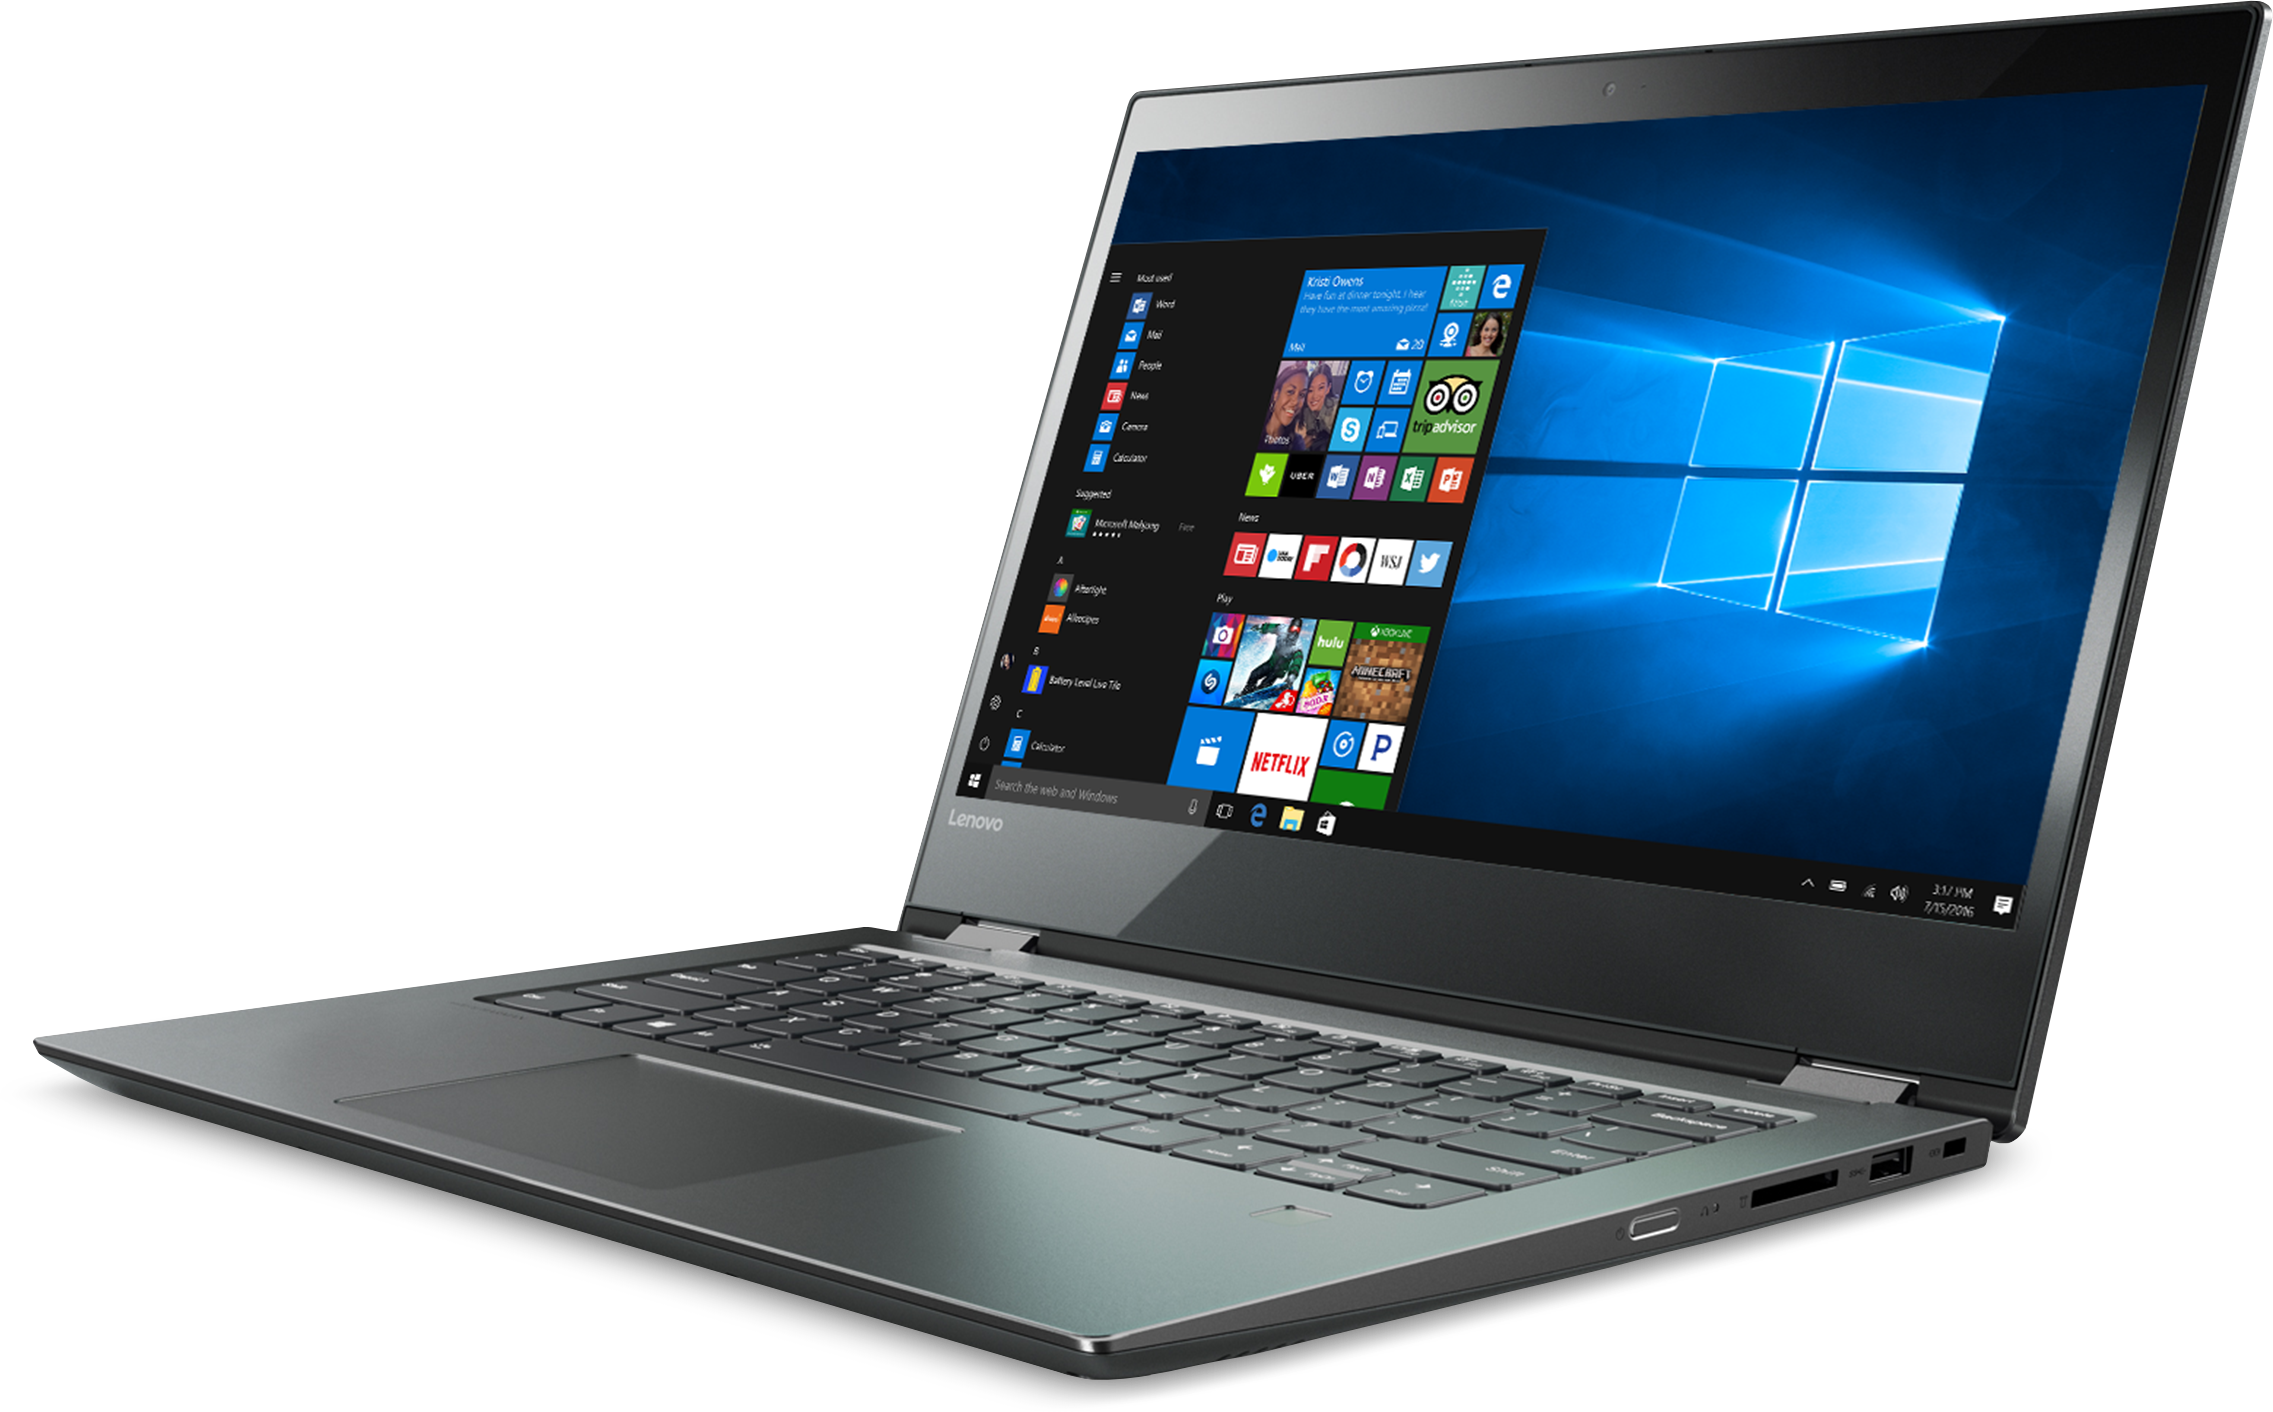 Lenovo Ideapad Flex 5 14 80XA0007US 2 in 1 PC Deal